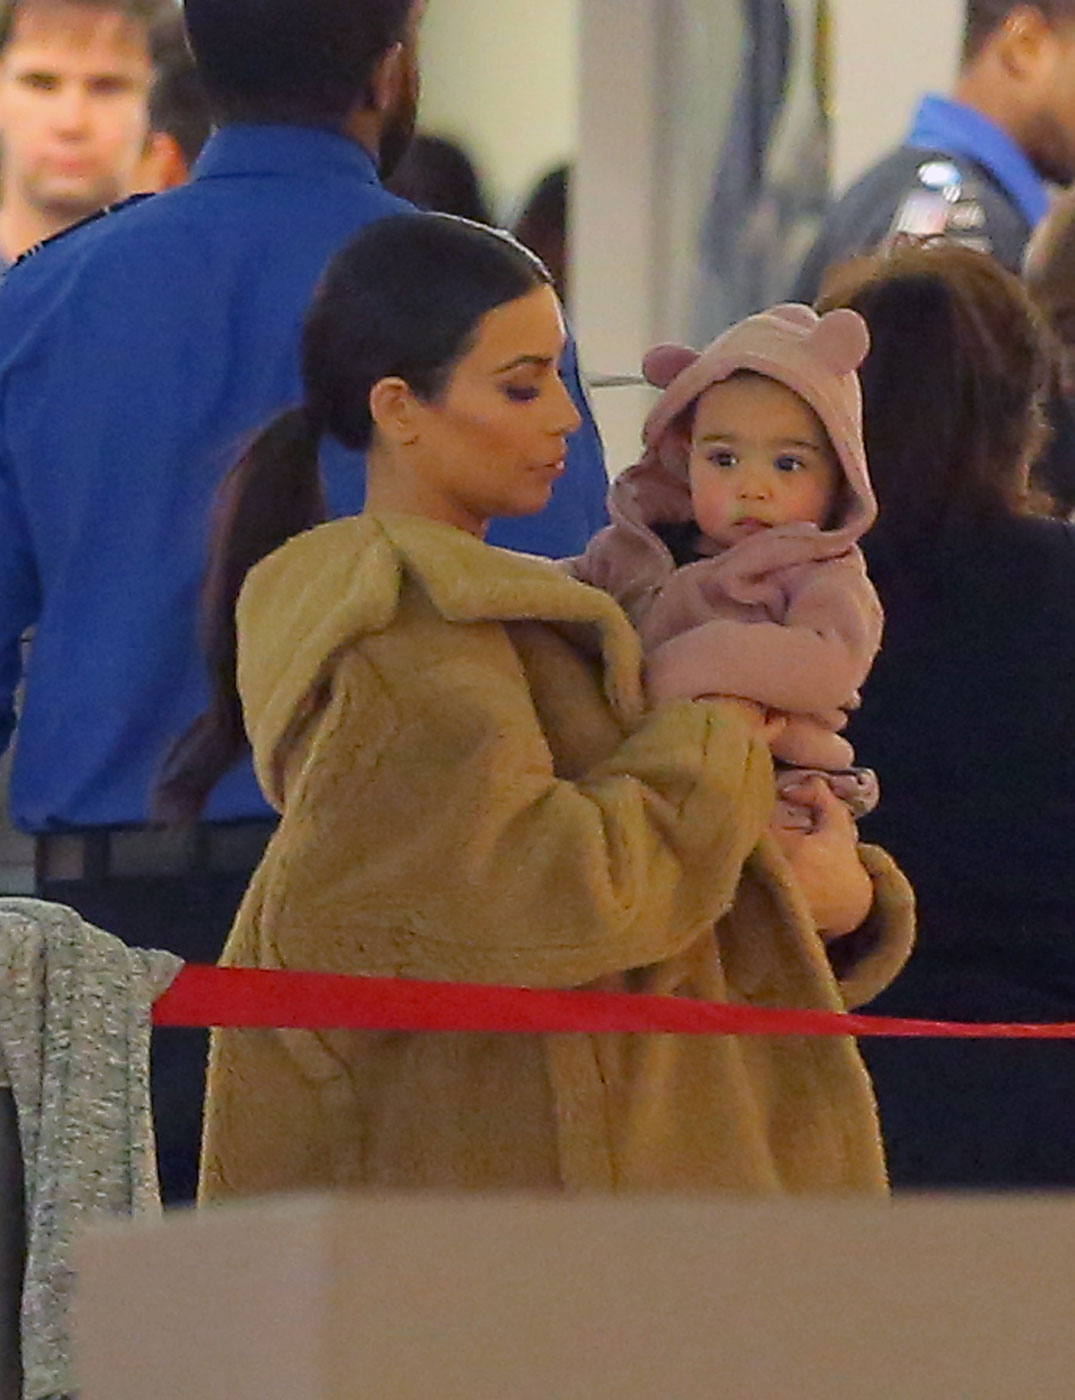 Kim Kardashian holds baby North West while wearing a fur coat inside JFK airport in New York City on Feb. 26, 2104.